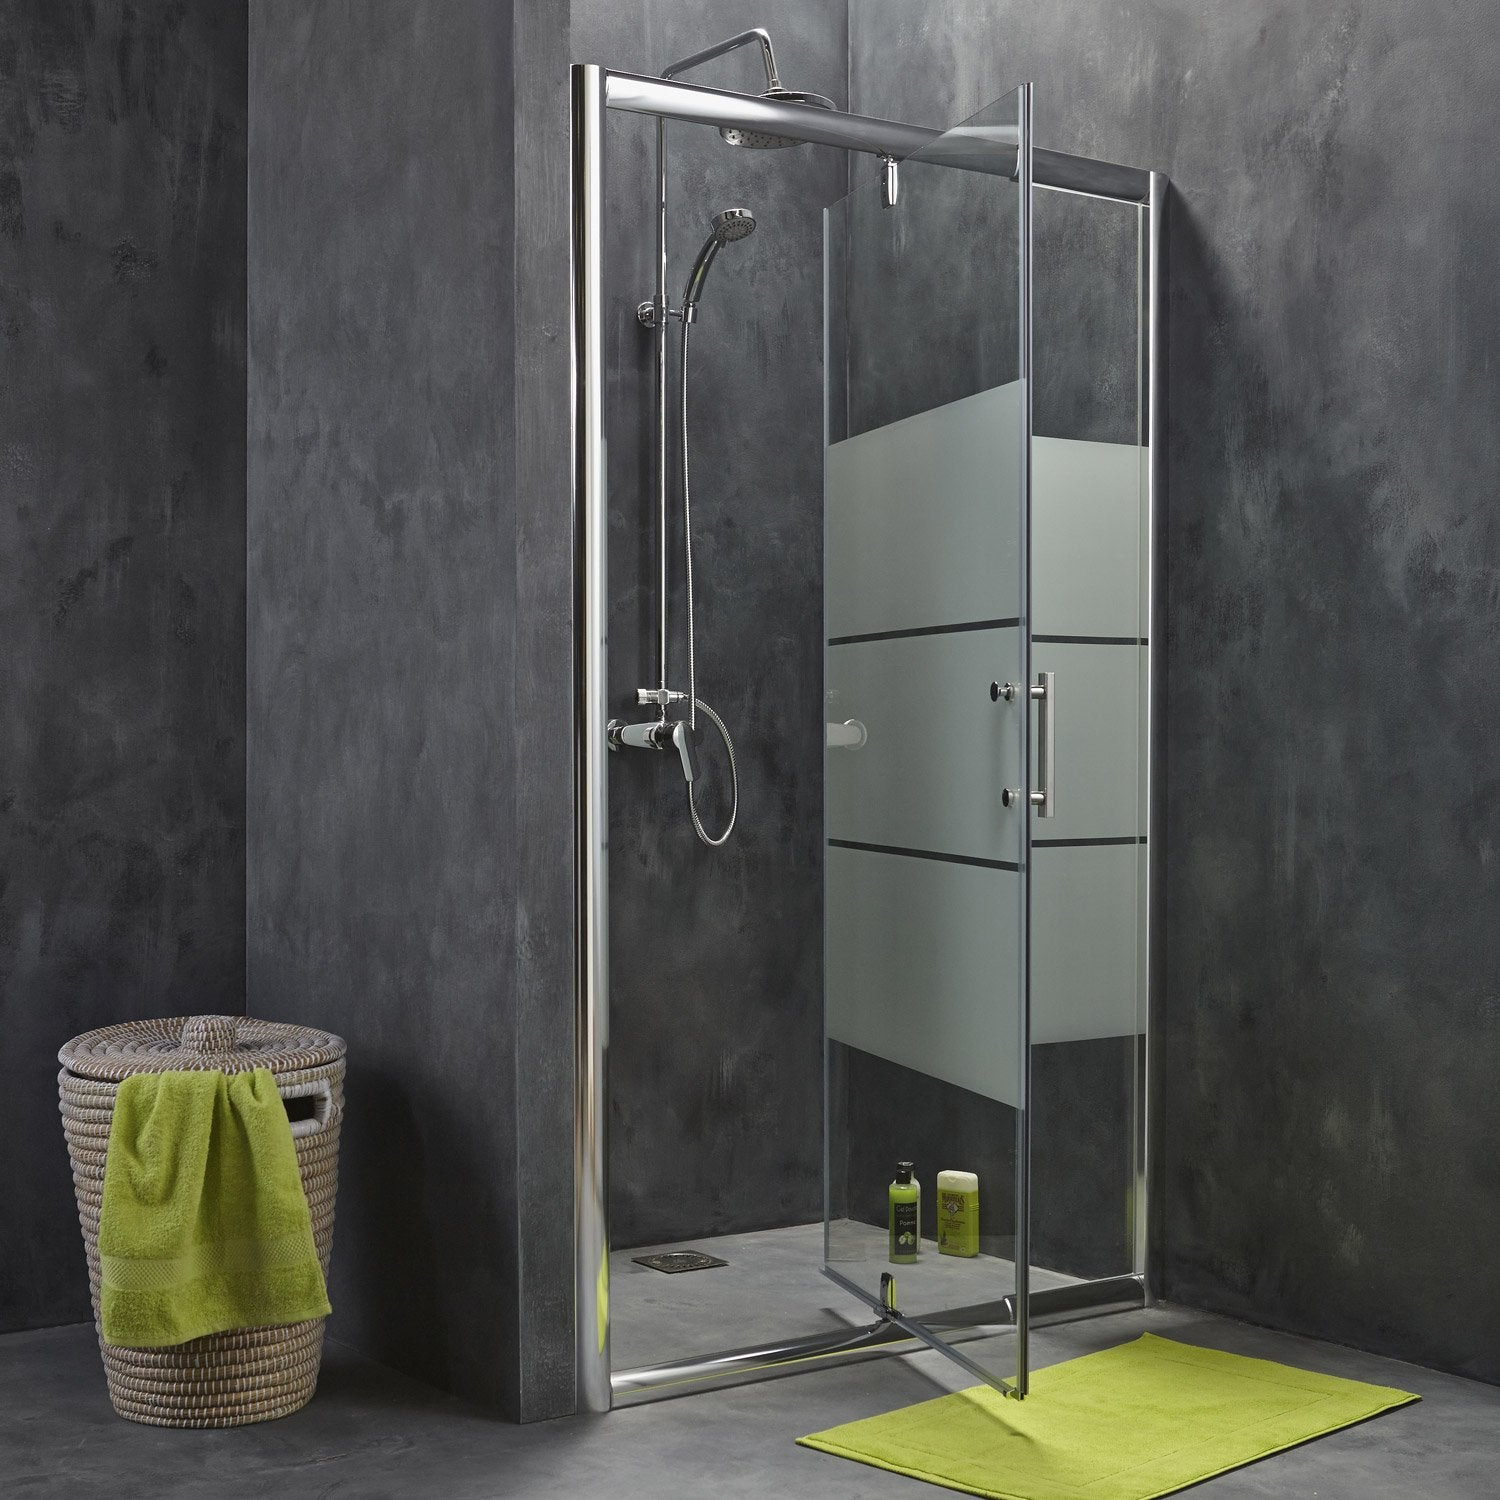 porte de douche pivotante 96 5 122 cm profil chrom optima2 leroy merlin. Black Bedroom Furniture Sets. Home Design Ideas